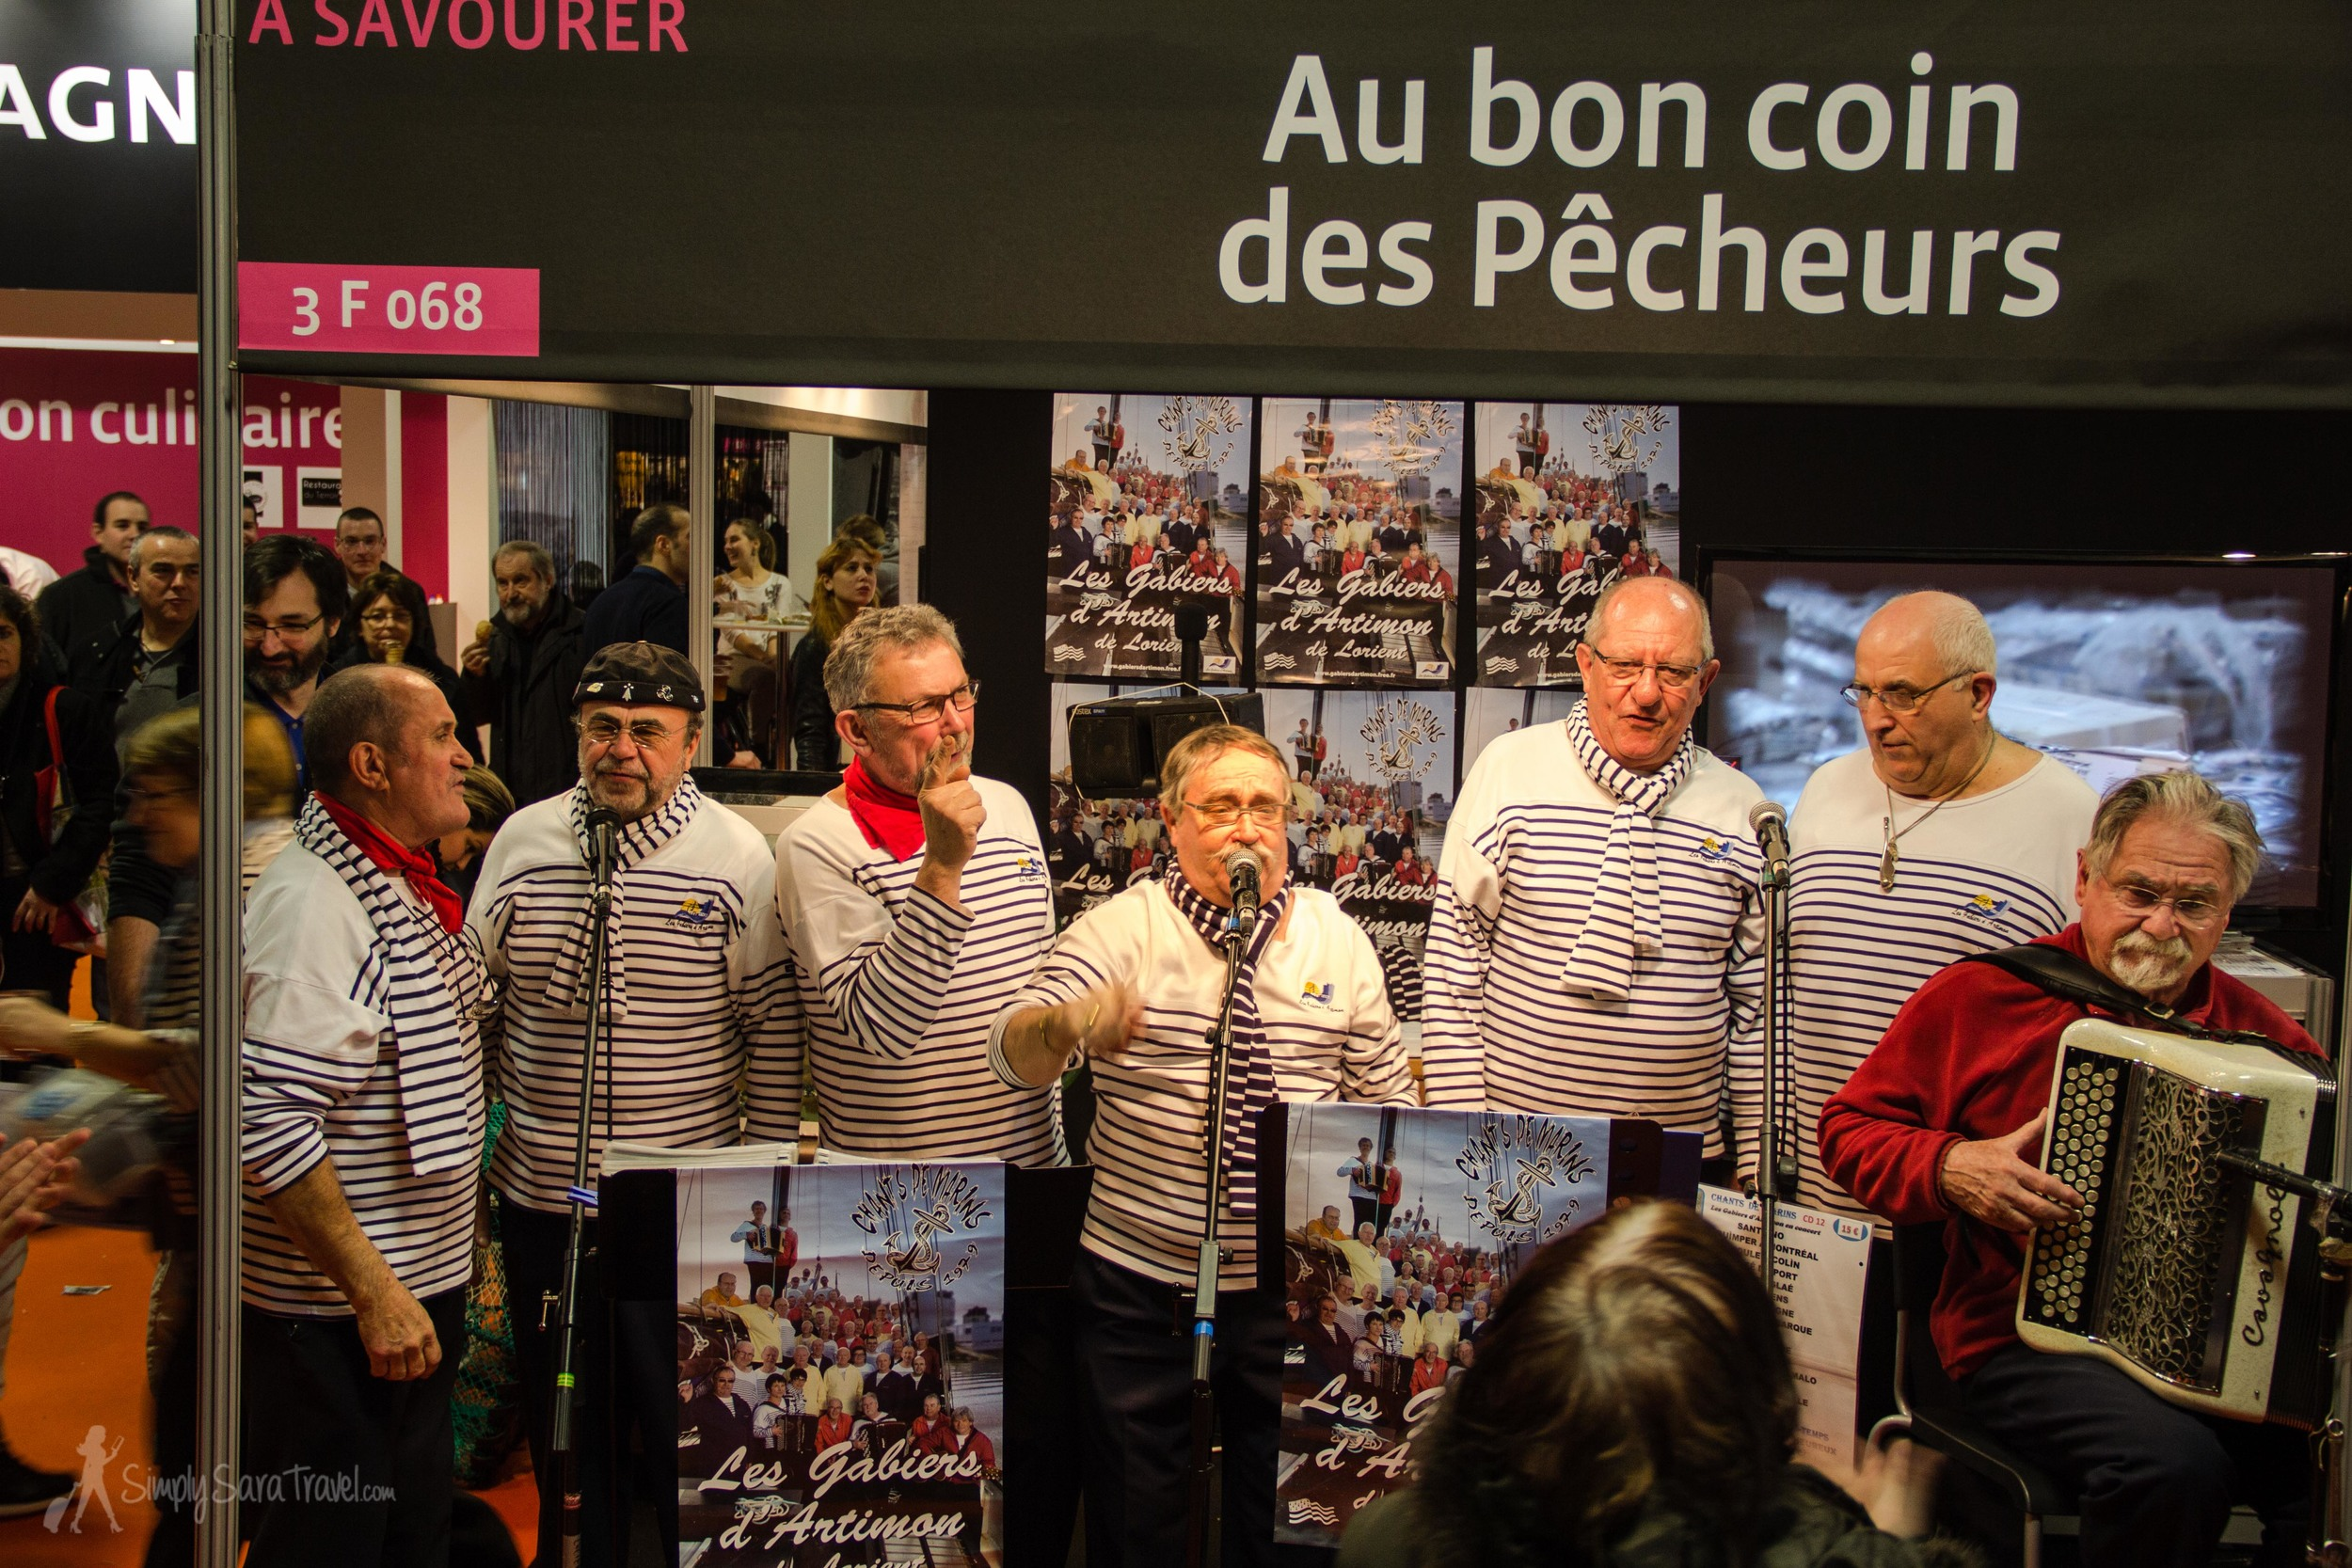 The Breton fishermen stole the show in the food pavilion, making the Bretagne (Brittany) corner the most boisterous and hopping region of France.